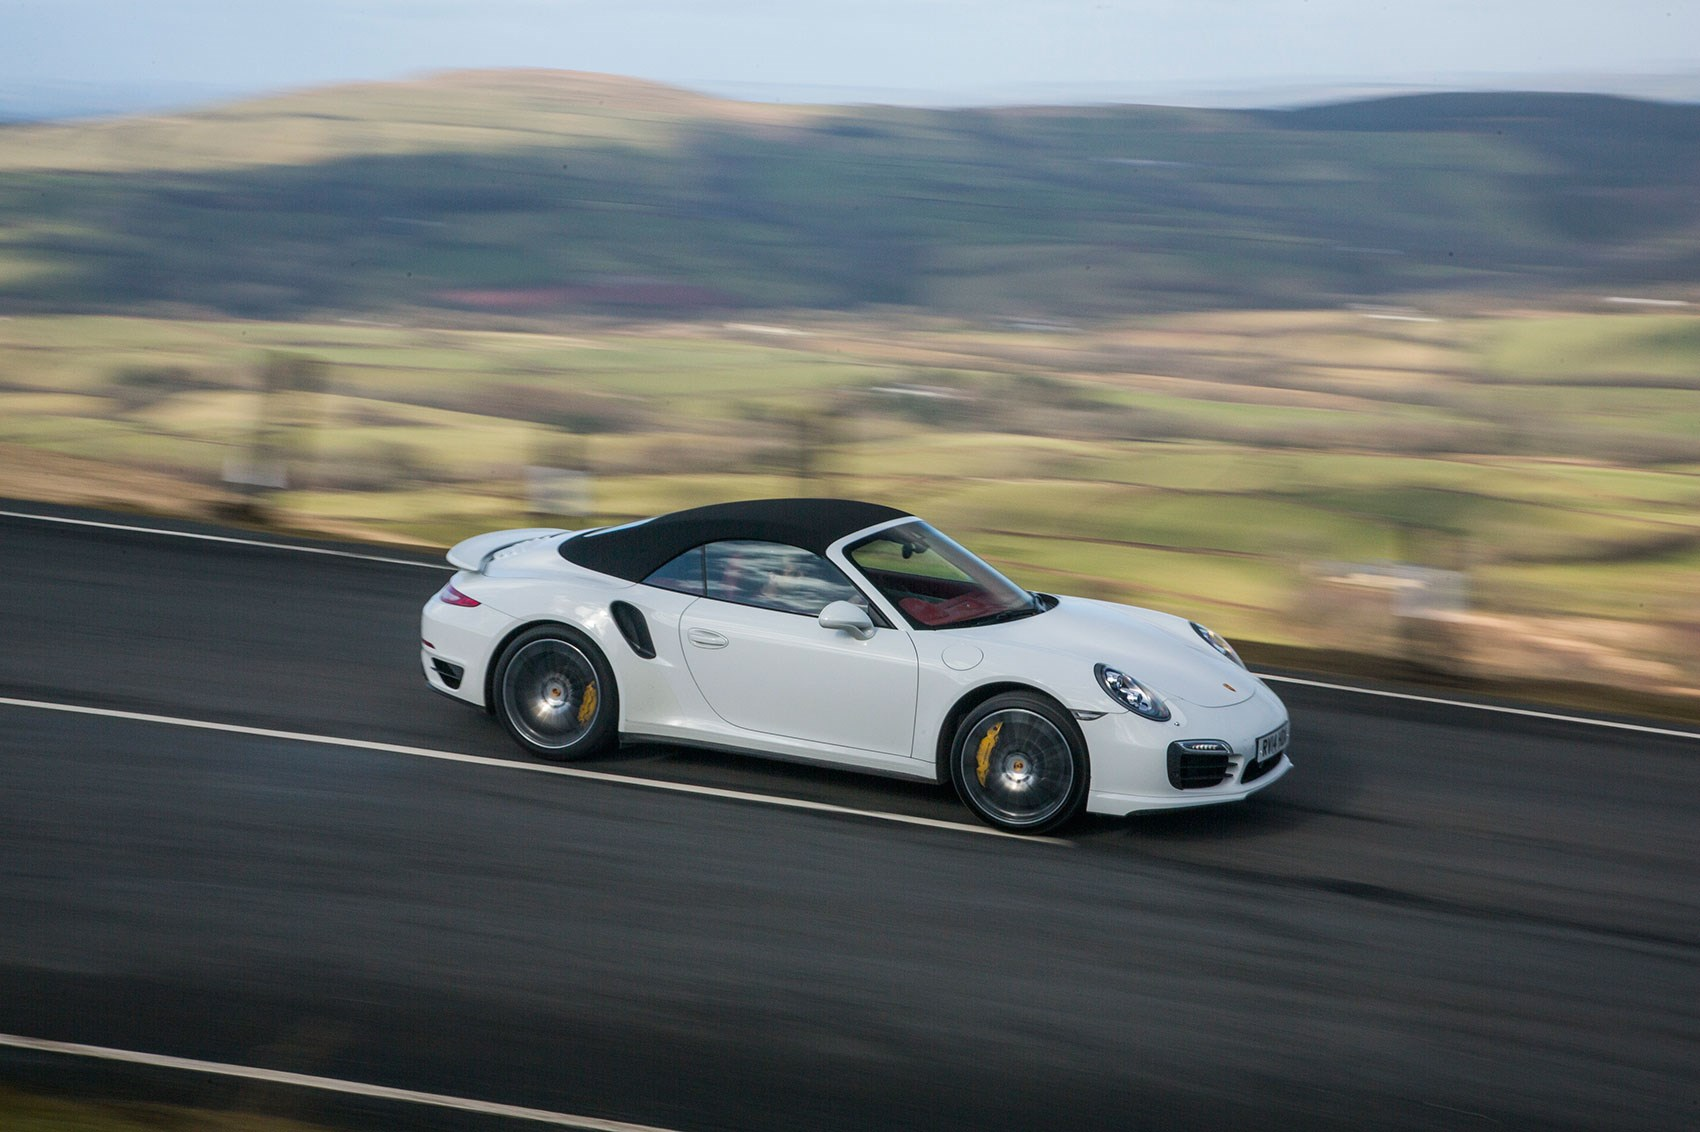 porsche claims 285mpg on the combined cycle not when driven like this 911 turbo